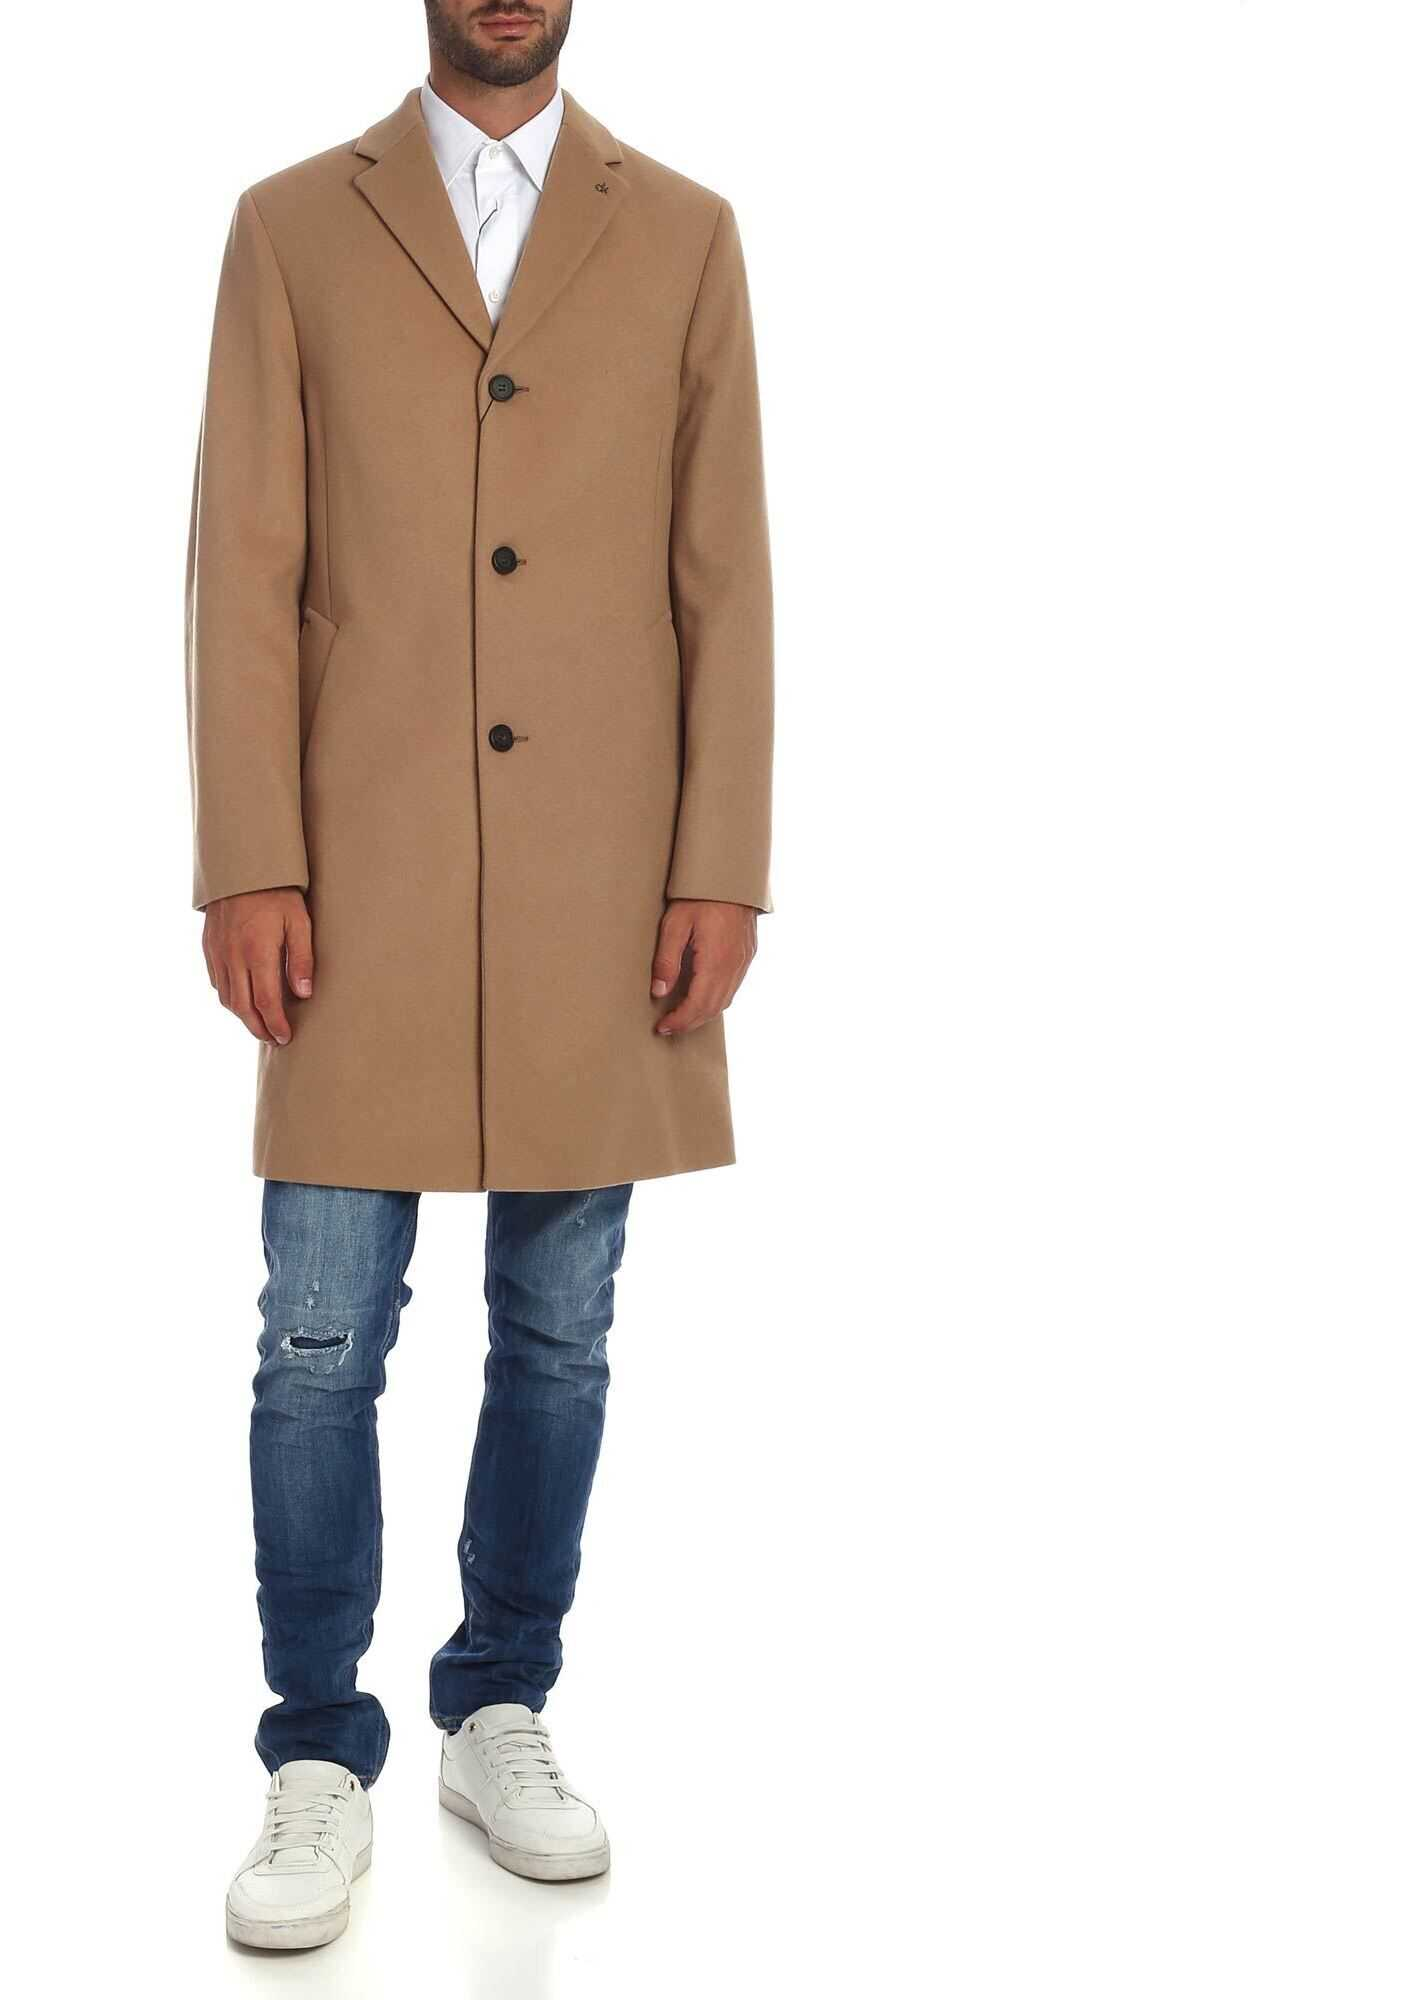 Calvin Klein Single-Breasted Coat In Camel Color Camel